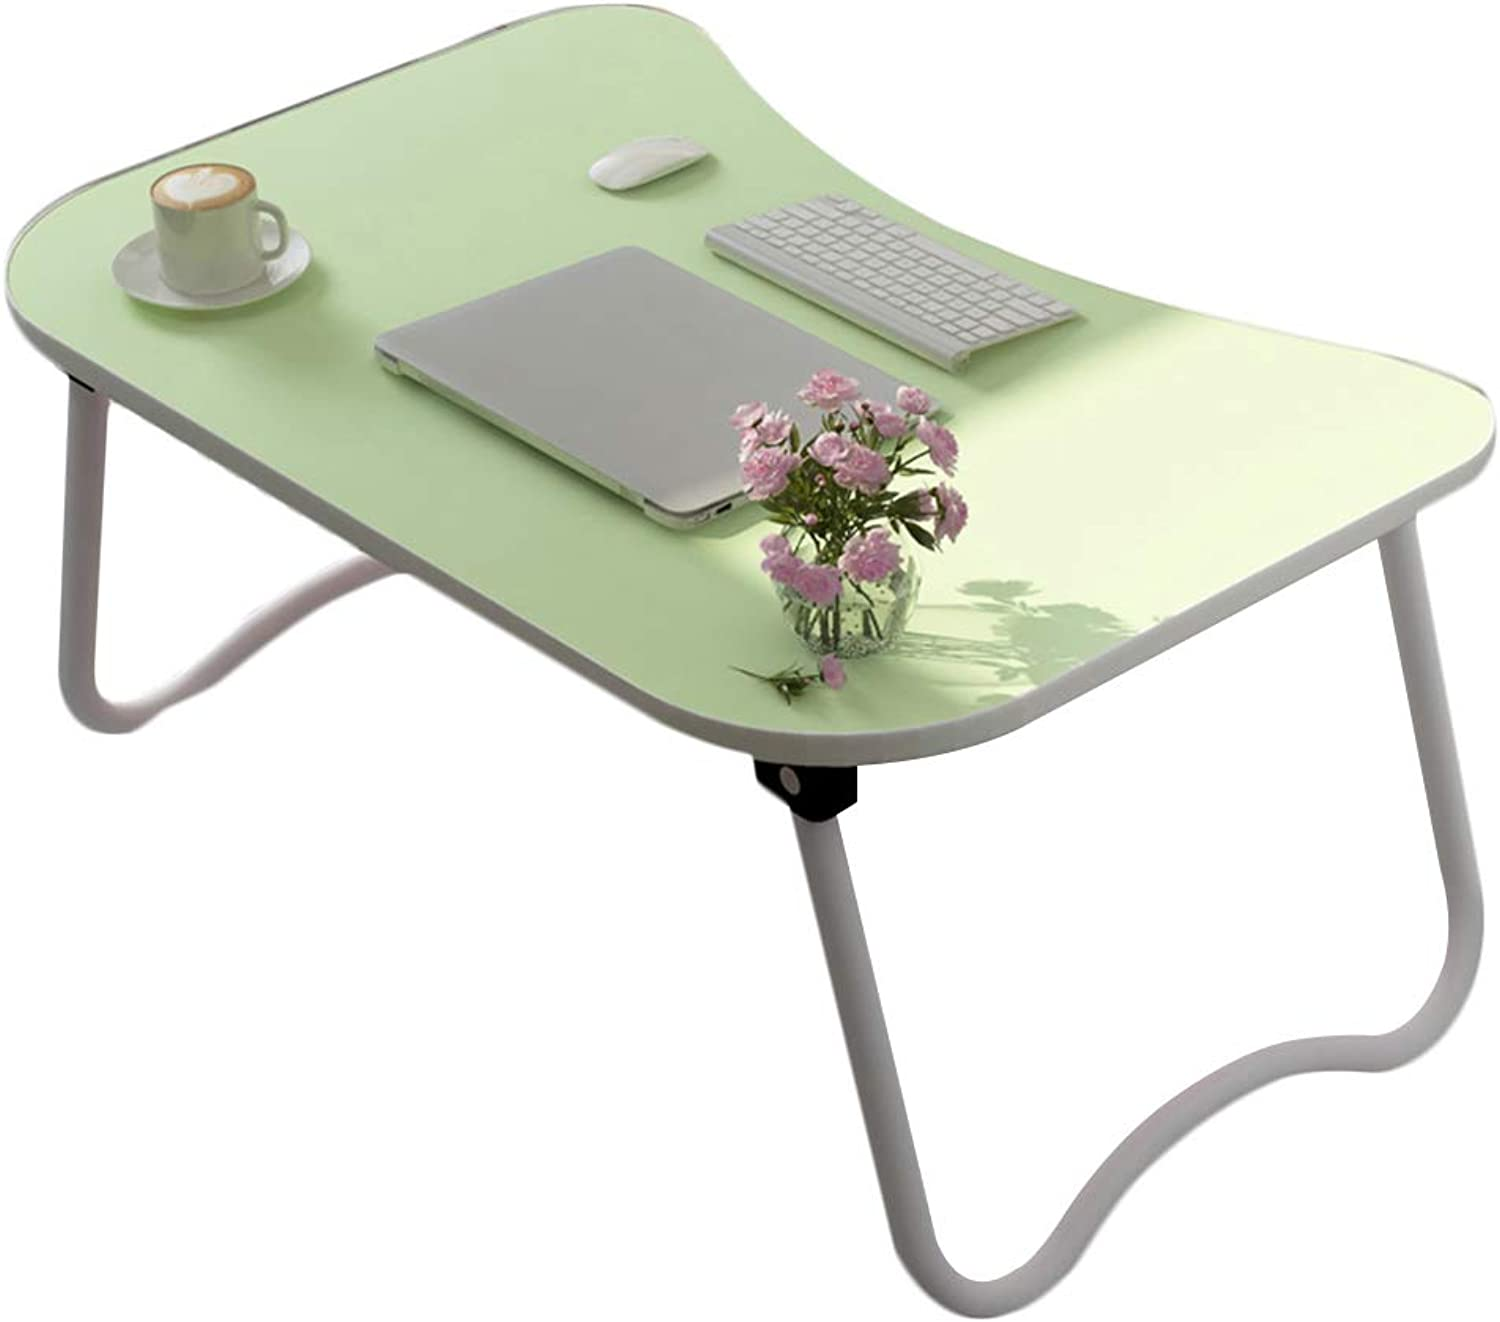 DQMSB Folding Table Dormitory Laptop Table Multi-Functional Bedroom Student Small Table Lazy Table (color   Green)